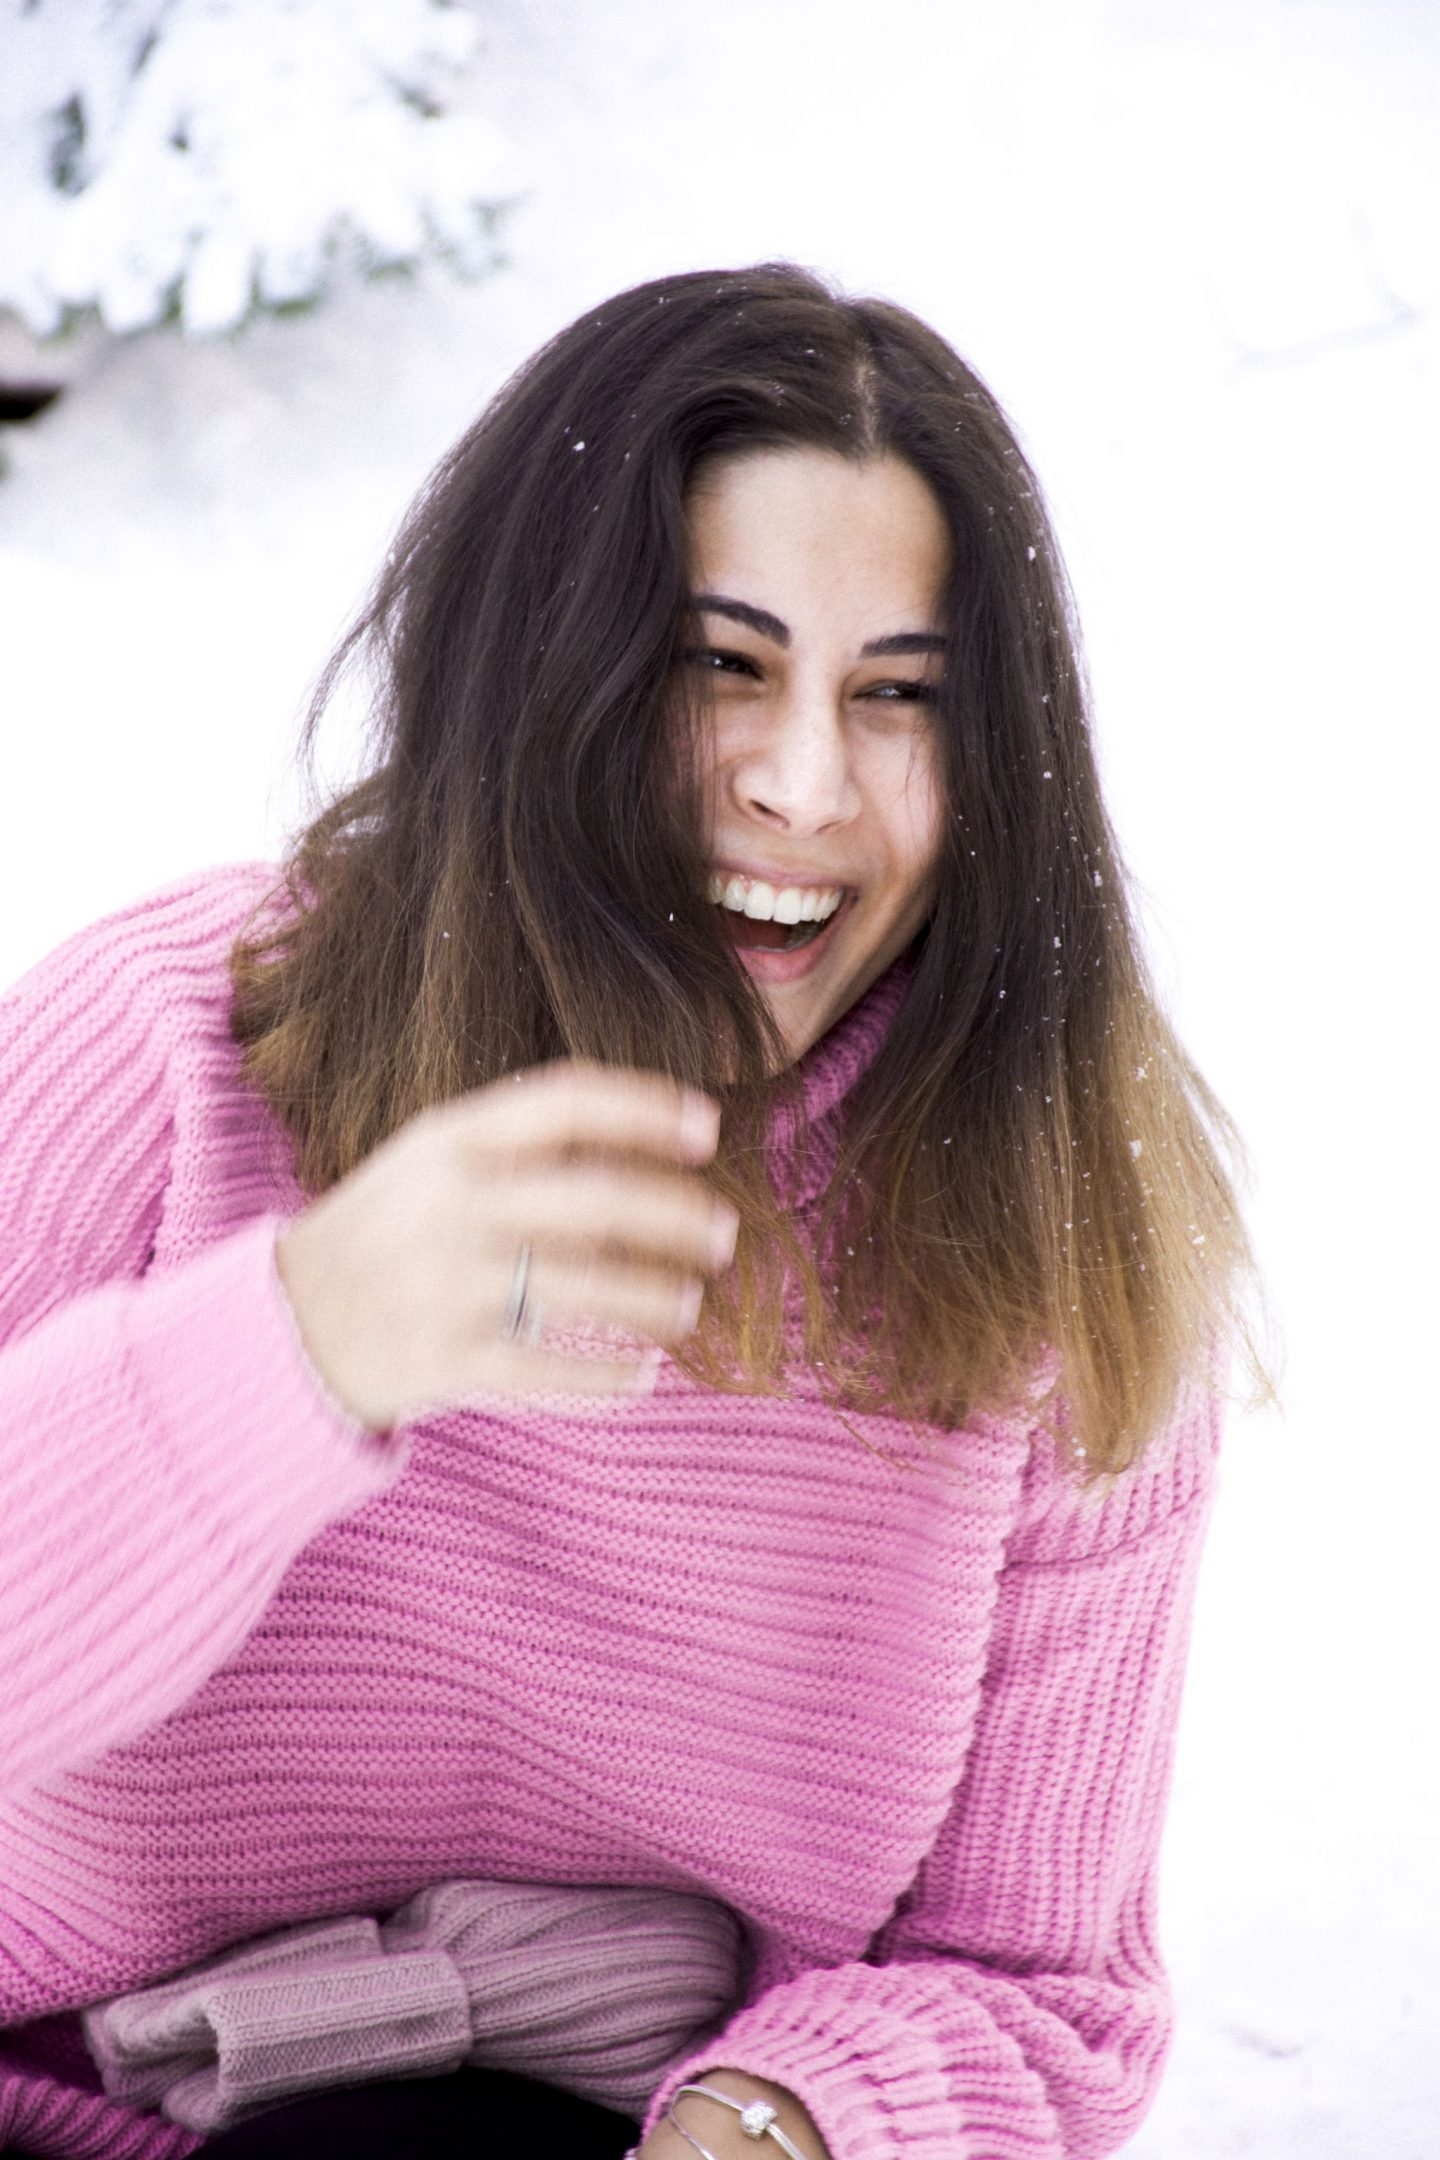 Kristina laughing in the snow